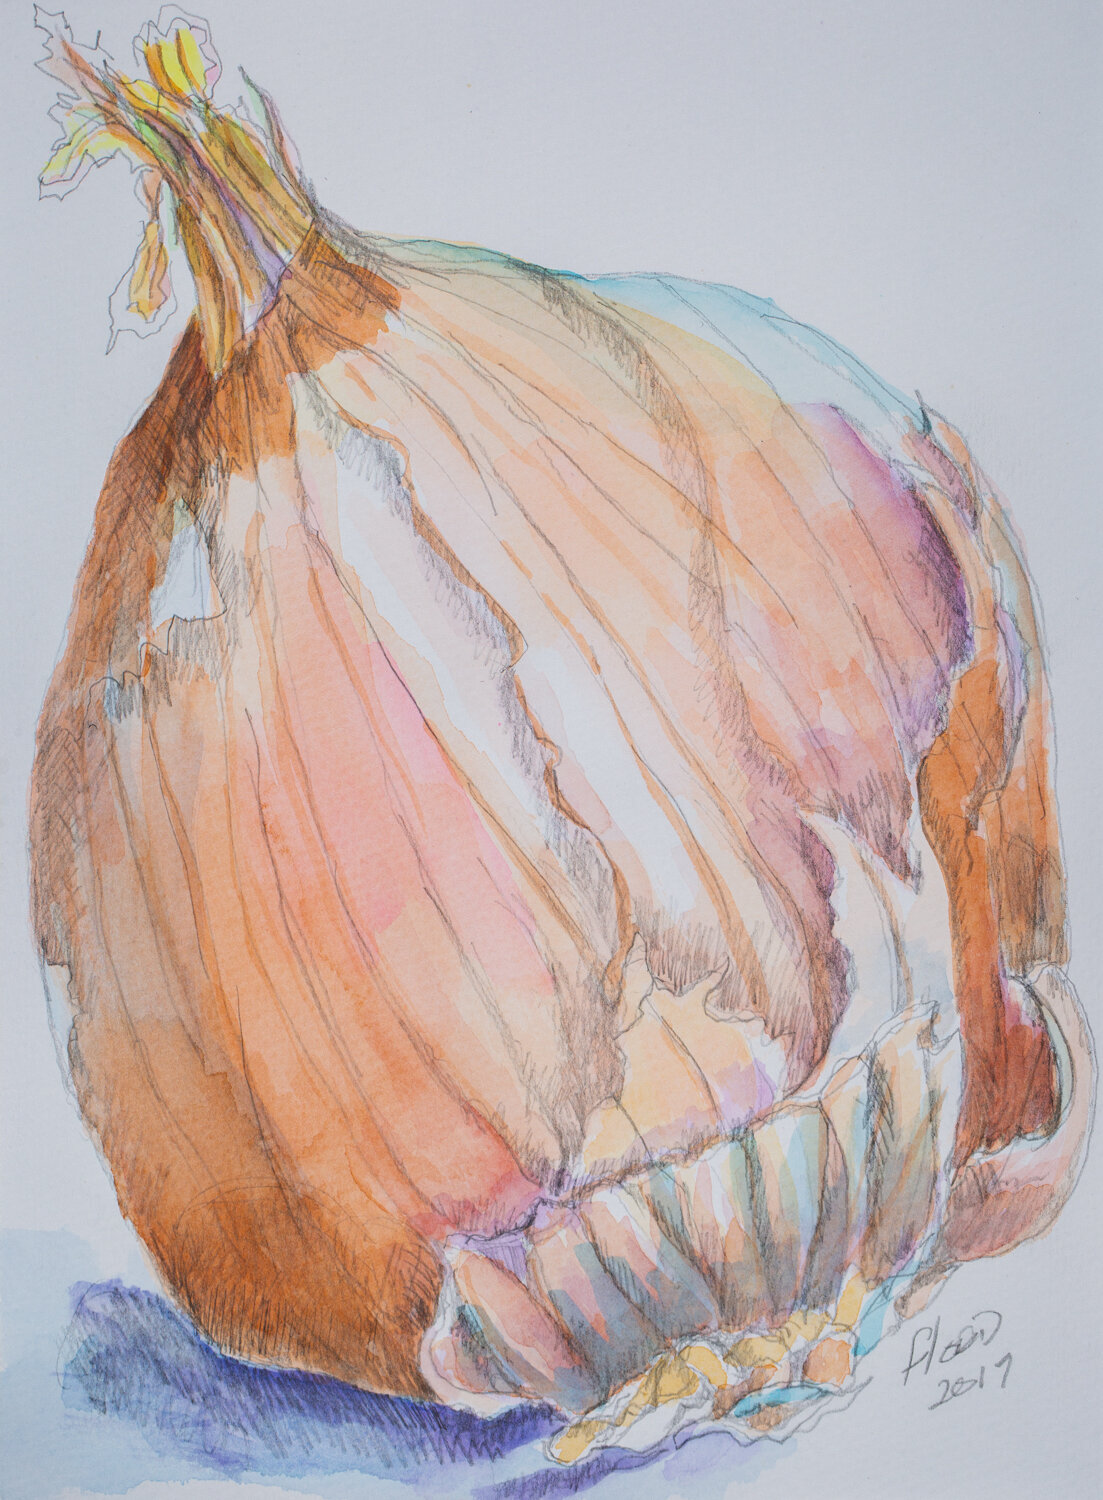 Clarence the Onion, by Claudia Flood